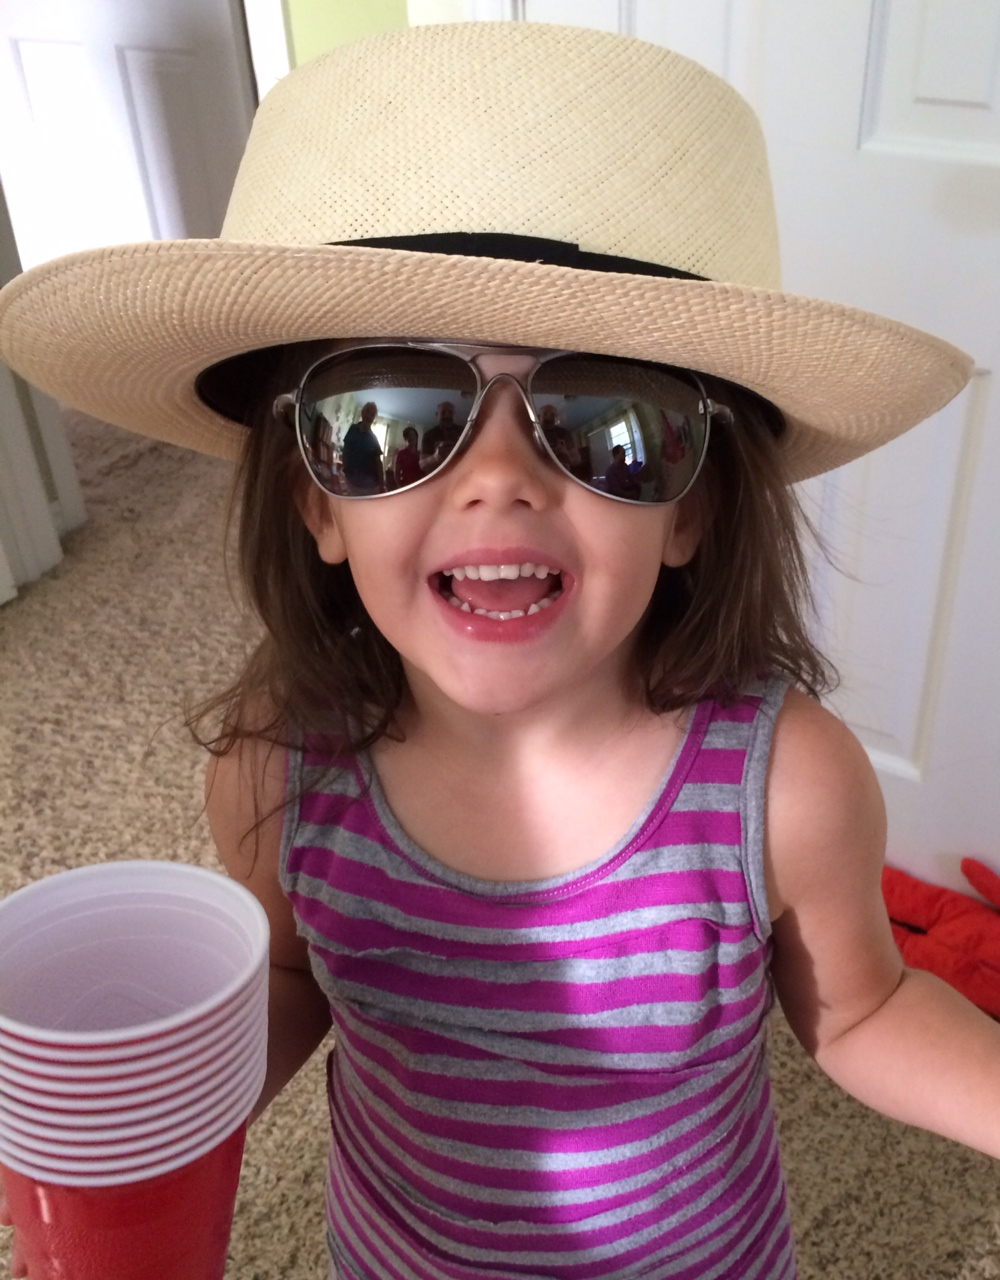 Our oldest Grand-Girl, Karlee in Pops' hat and her Uncle Kyle's shades. The red cups? All hers.